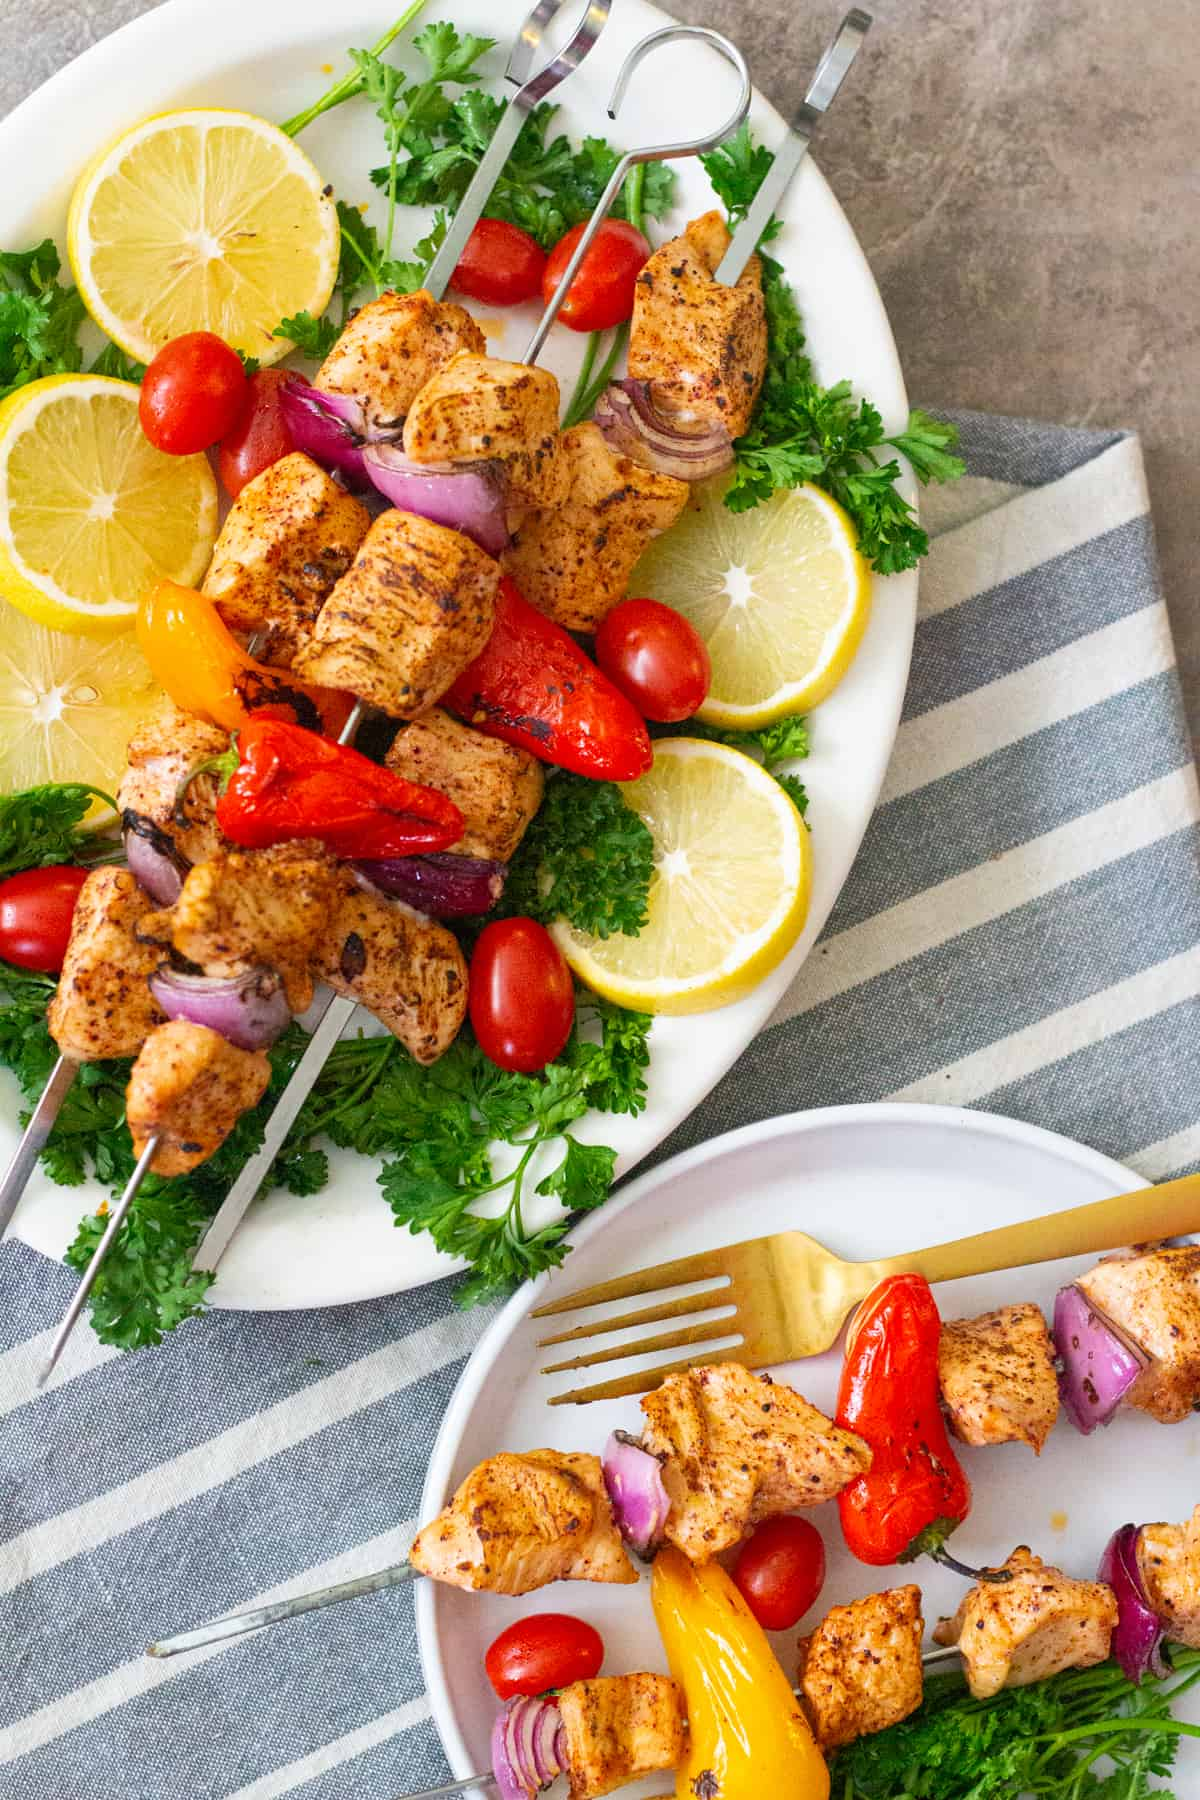 Heat the grill and once the grill is ready, thread the marinated chicken and vegetables on skewers and grill until fully cooked. Serve warm.